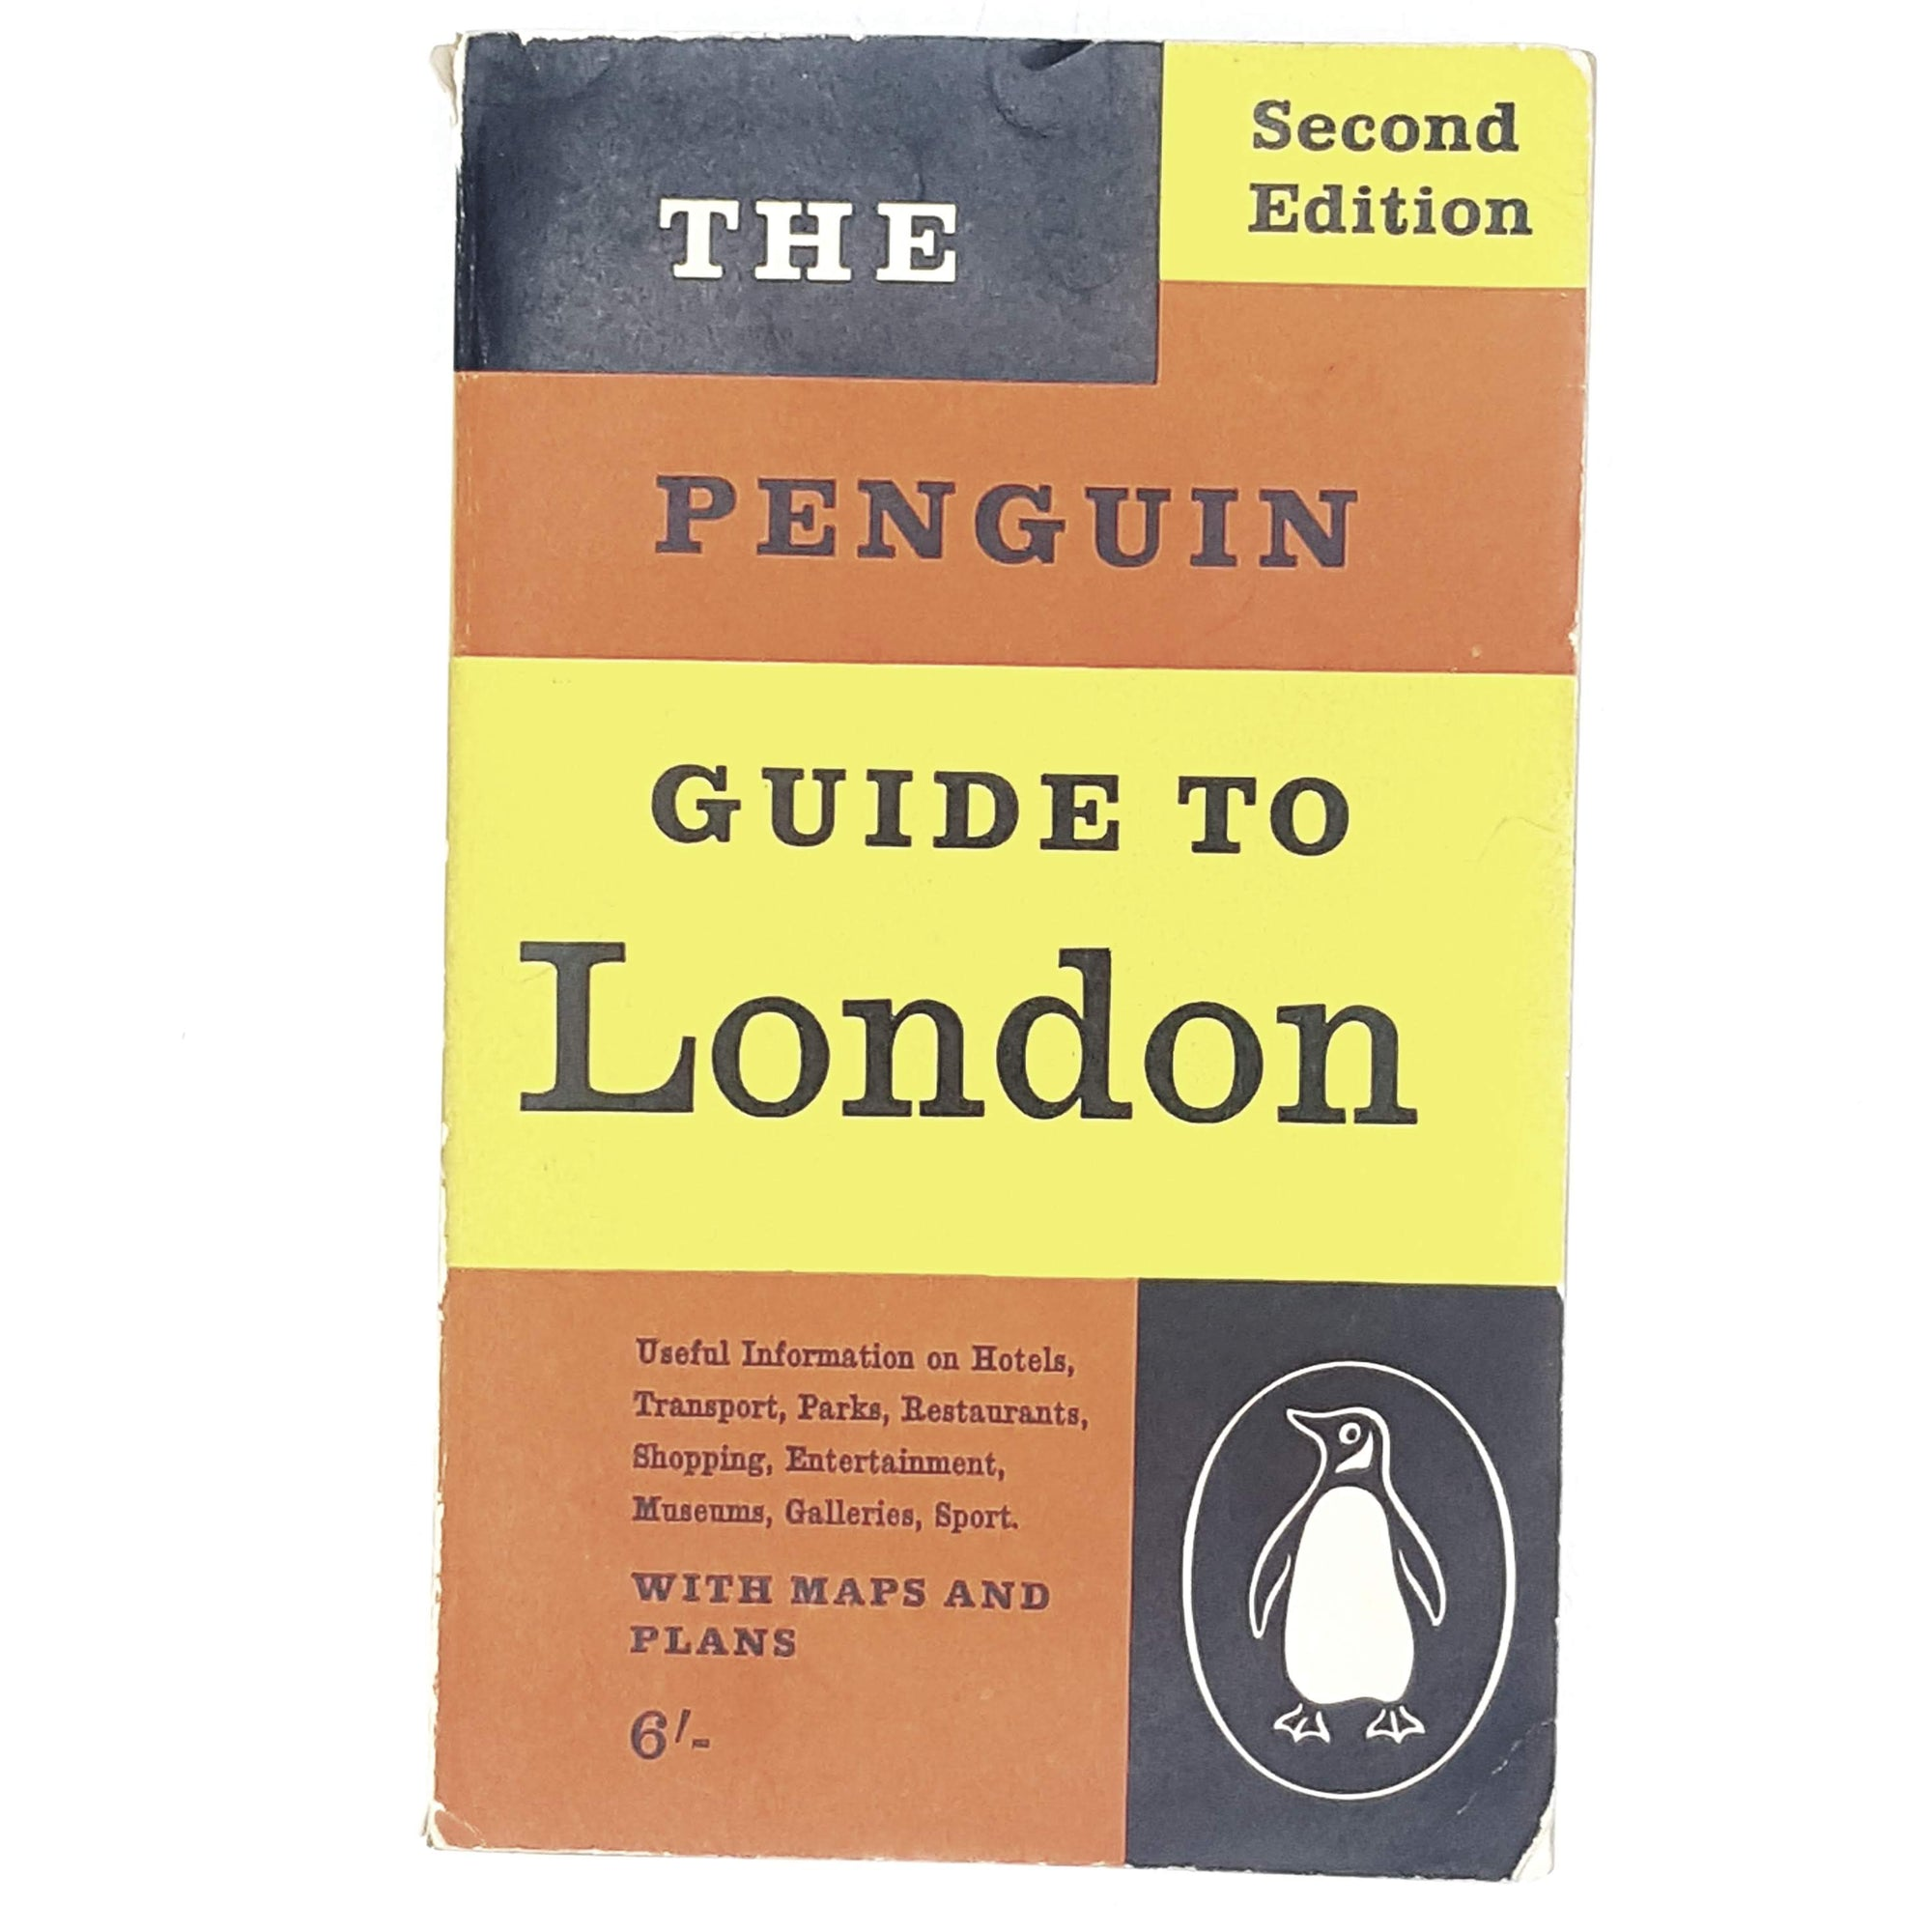 Vintage Penguin Guide to London 1960 - 1963